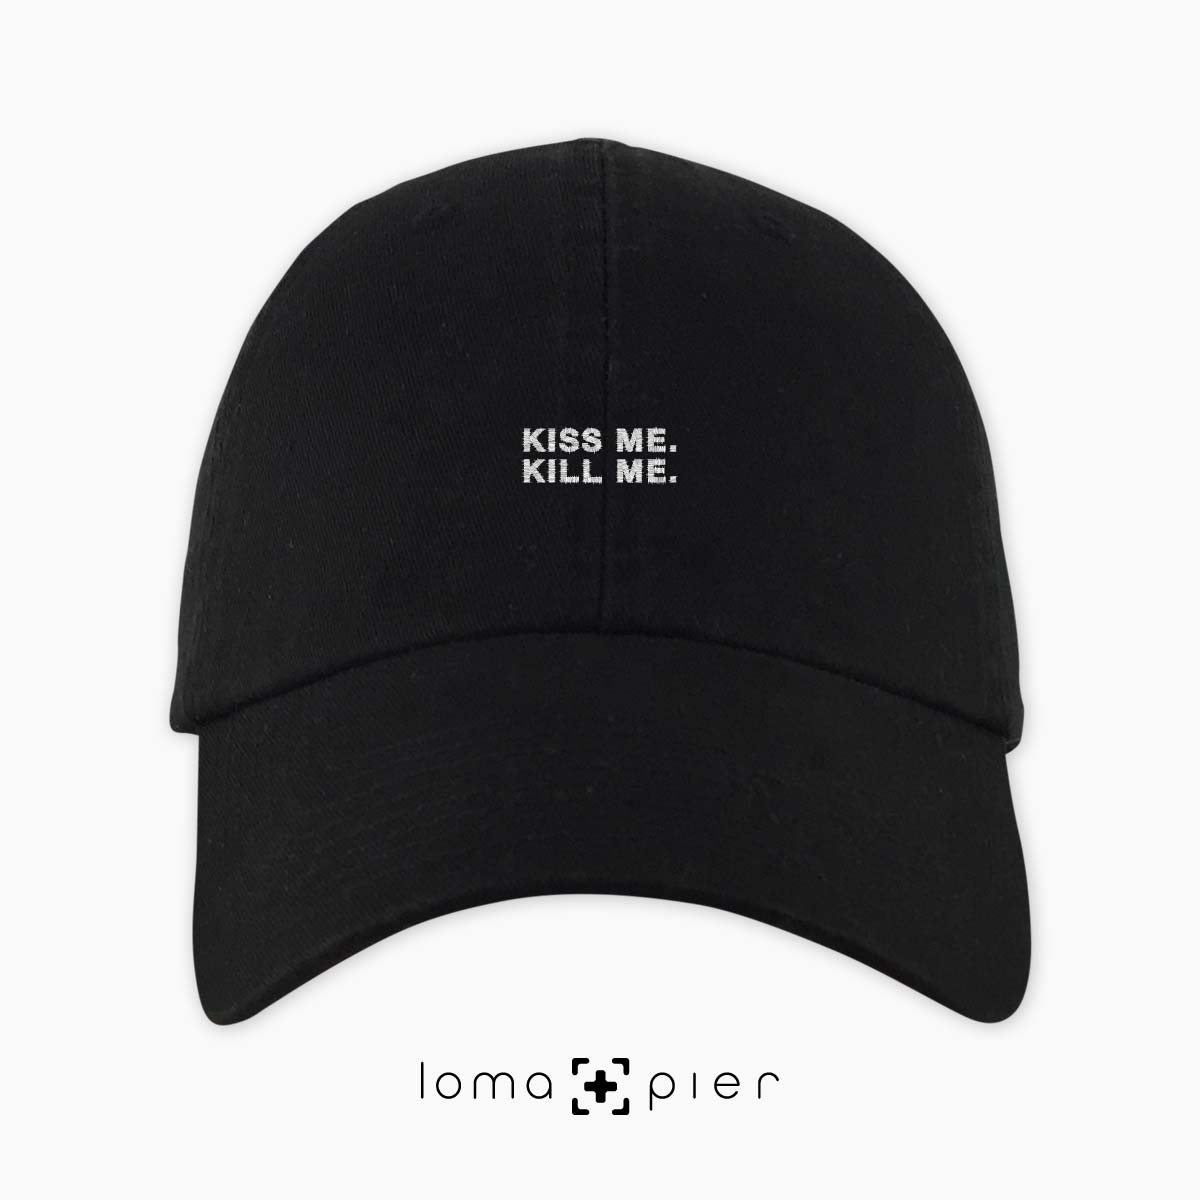 0fa4181b0089e KILL ME. typography embroidered on a black unstructured dad hat with white